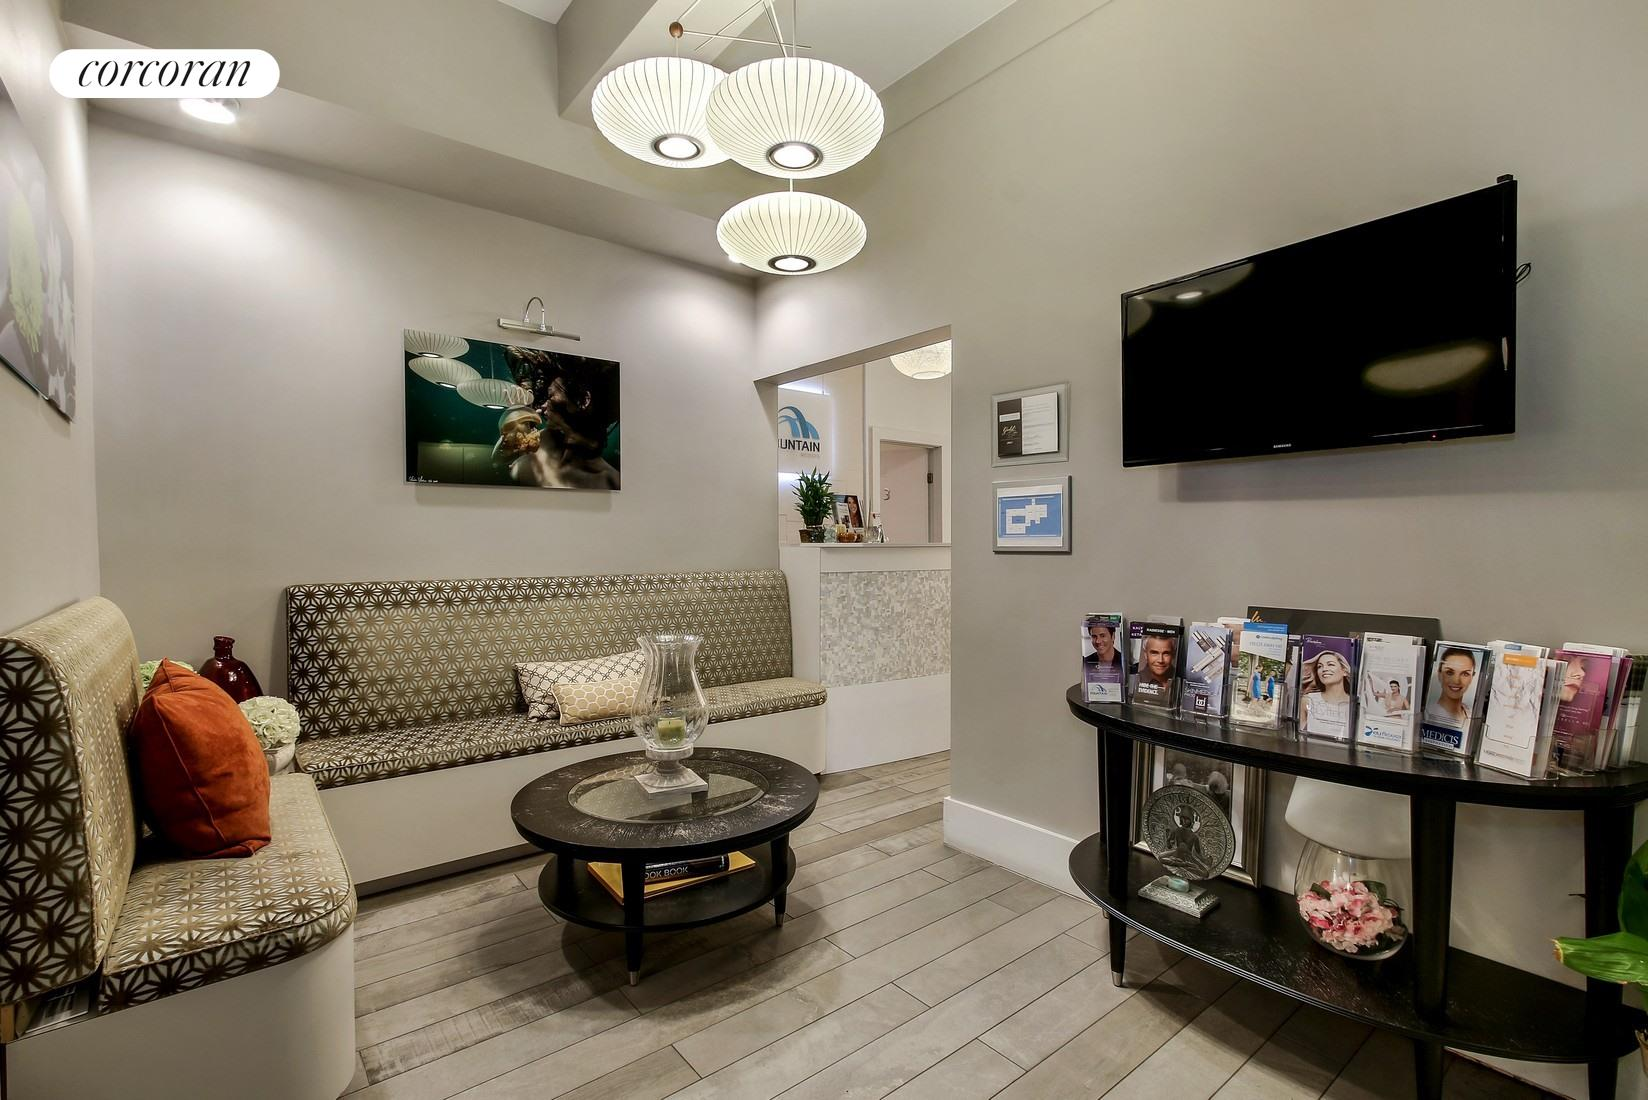 205 East 69th Street, Office B, Waiting Area